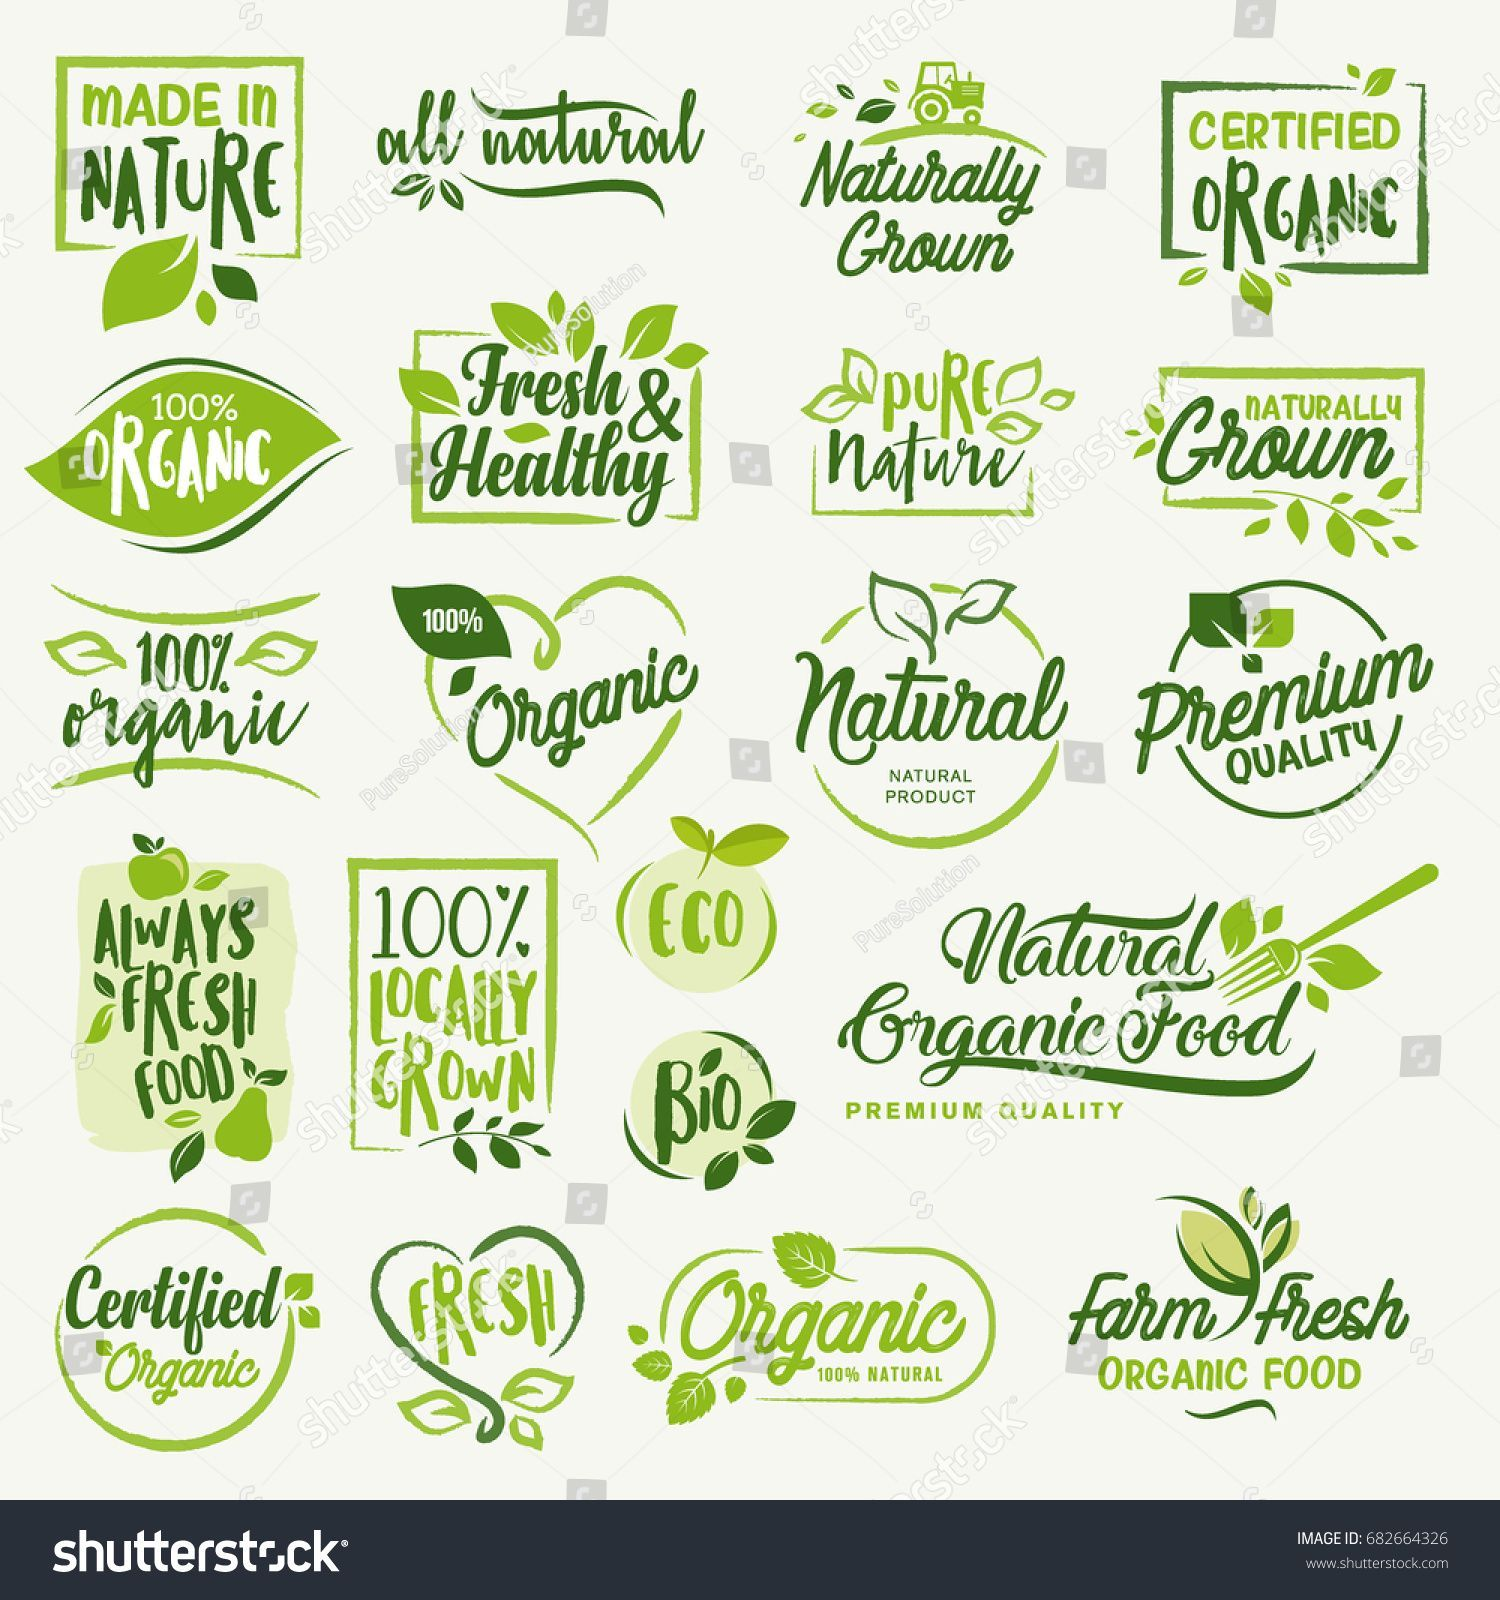 Organic food, farm fresh and natural product icons and